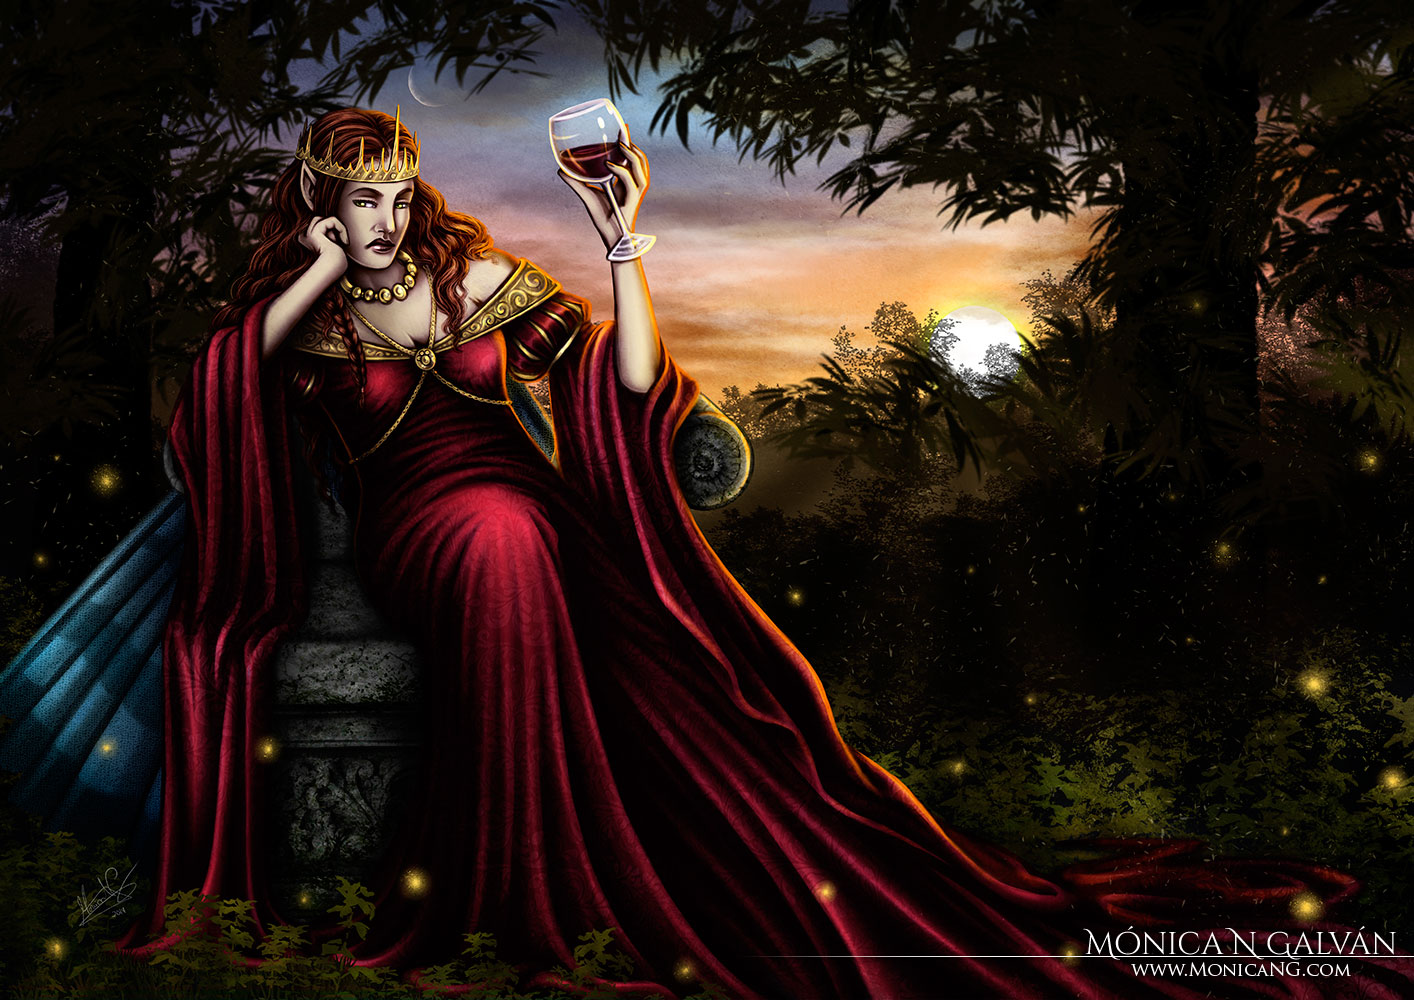 Farian, Queen of the Sidhe – EV Frustration